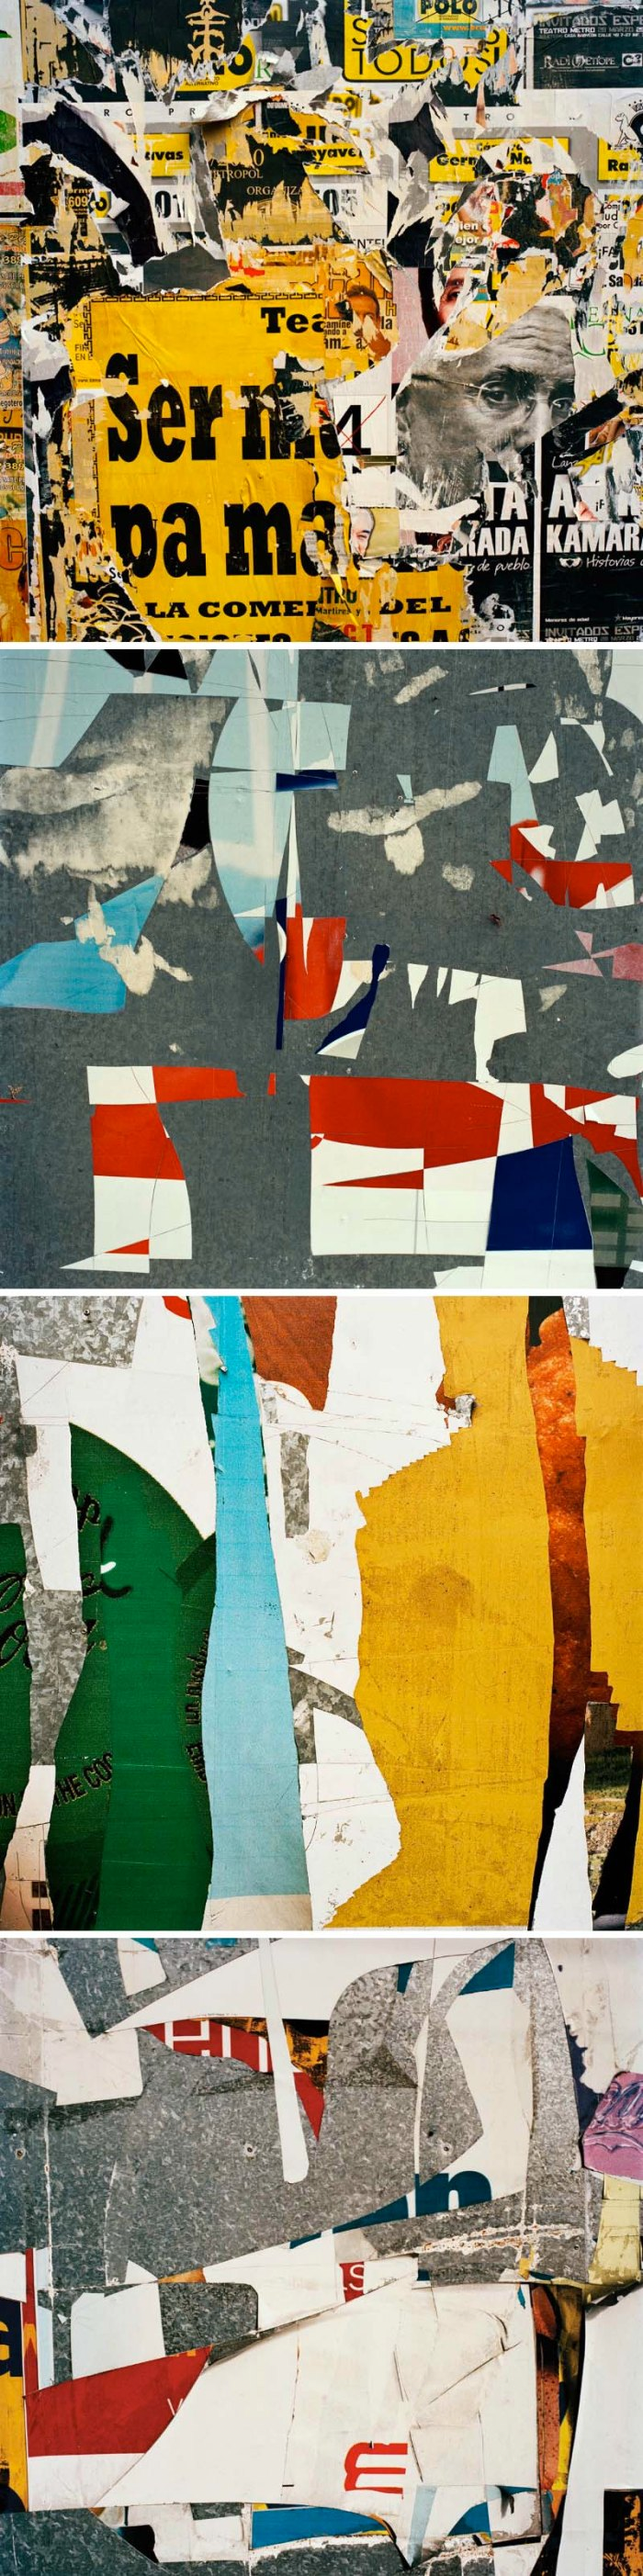 Mark Hartman Photography, Billboards, photo series of billboards with ripped down postings creating a collage effect